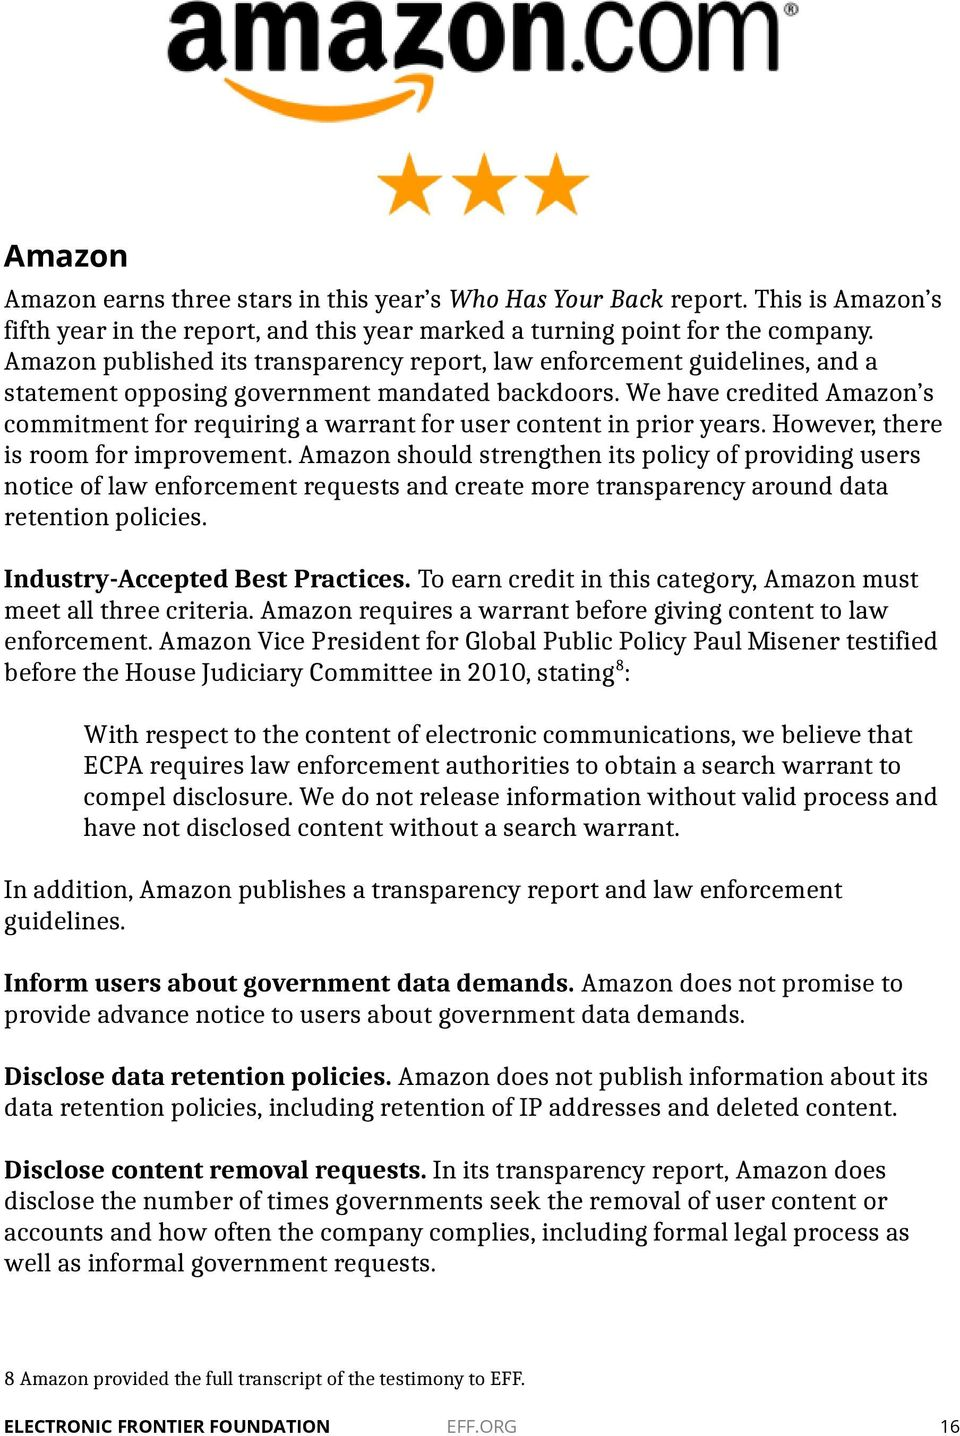 We have credited Amazon s commitment for requiring a warrant for user content in prior years. However, there is room for improvement.